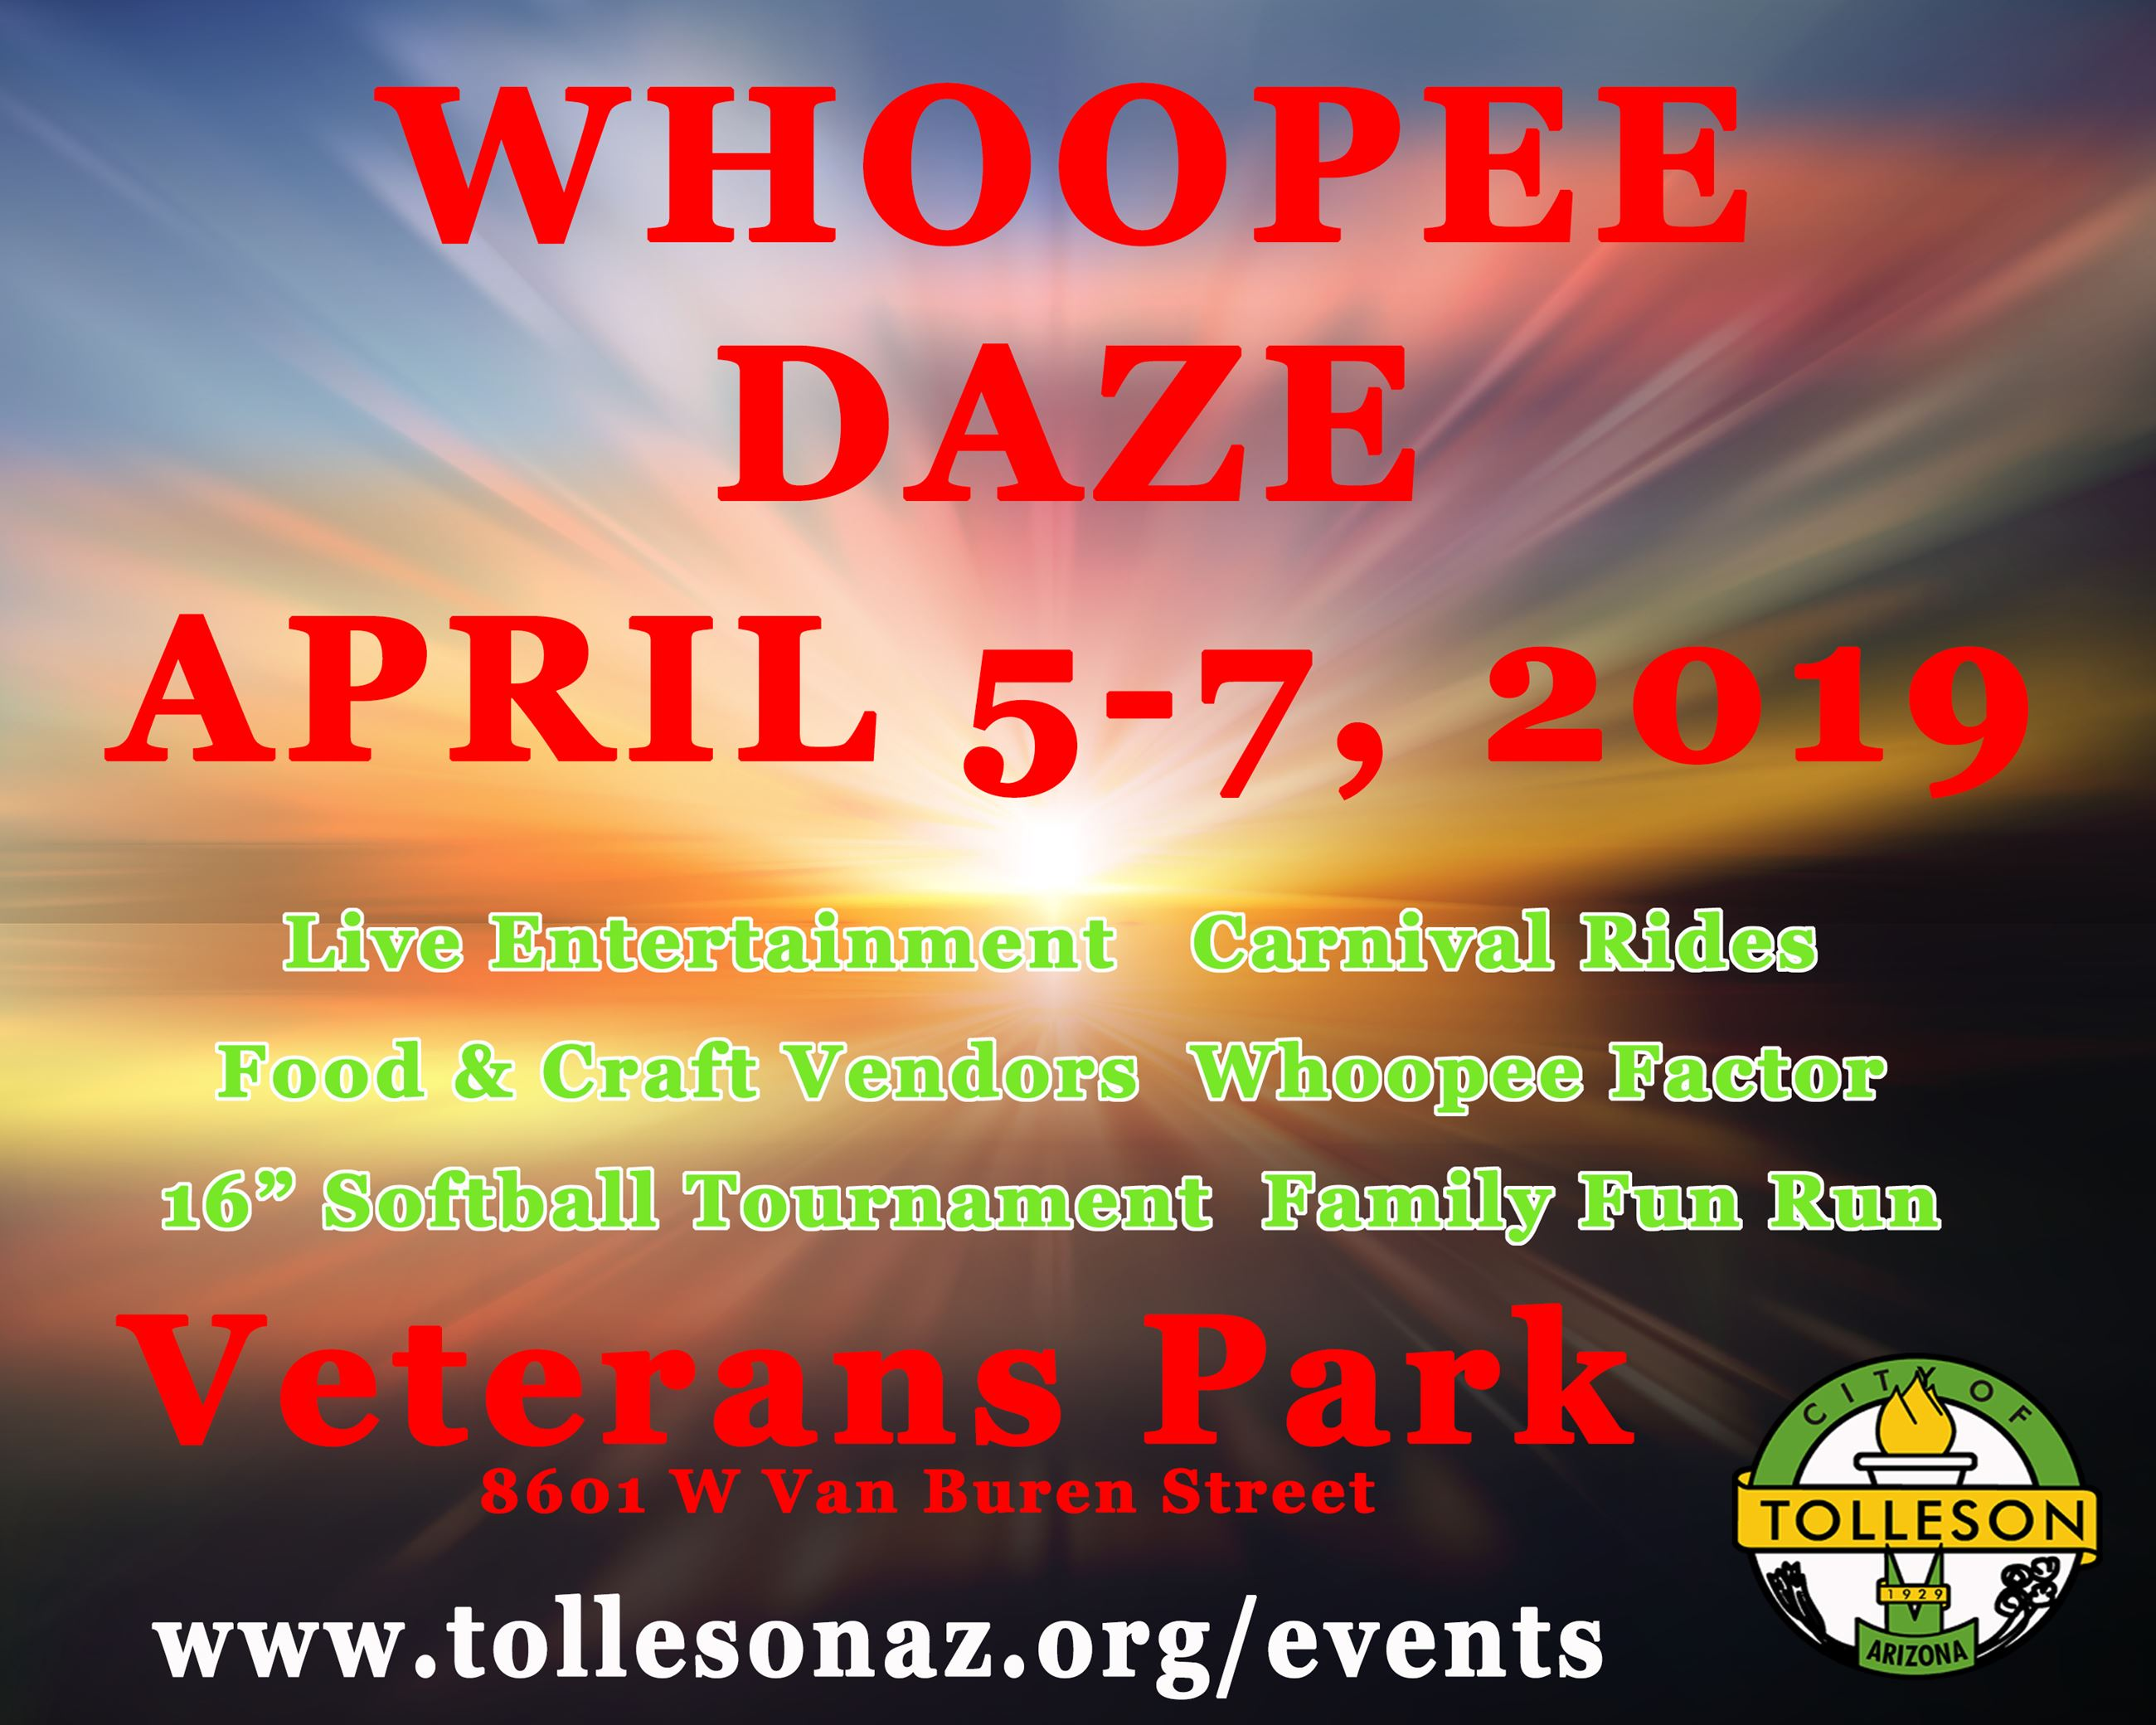 Whoopee Daze Save the Date 2019